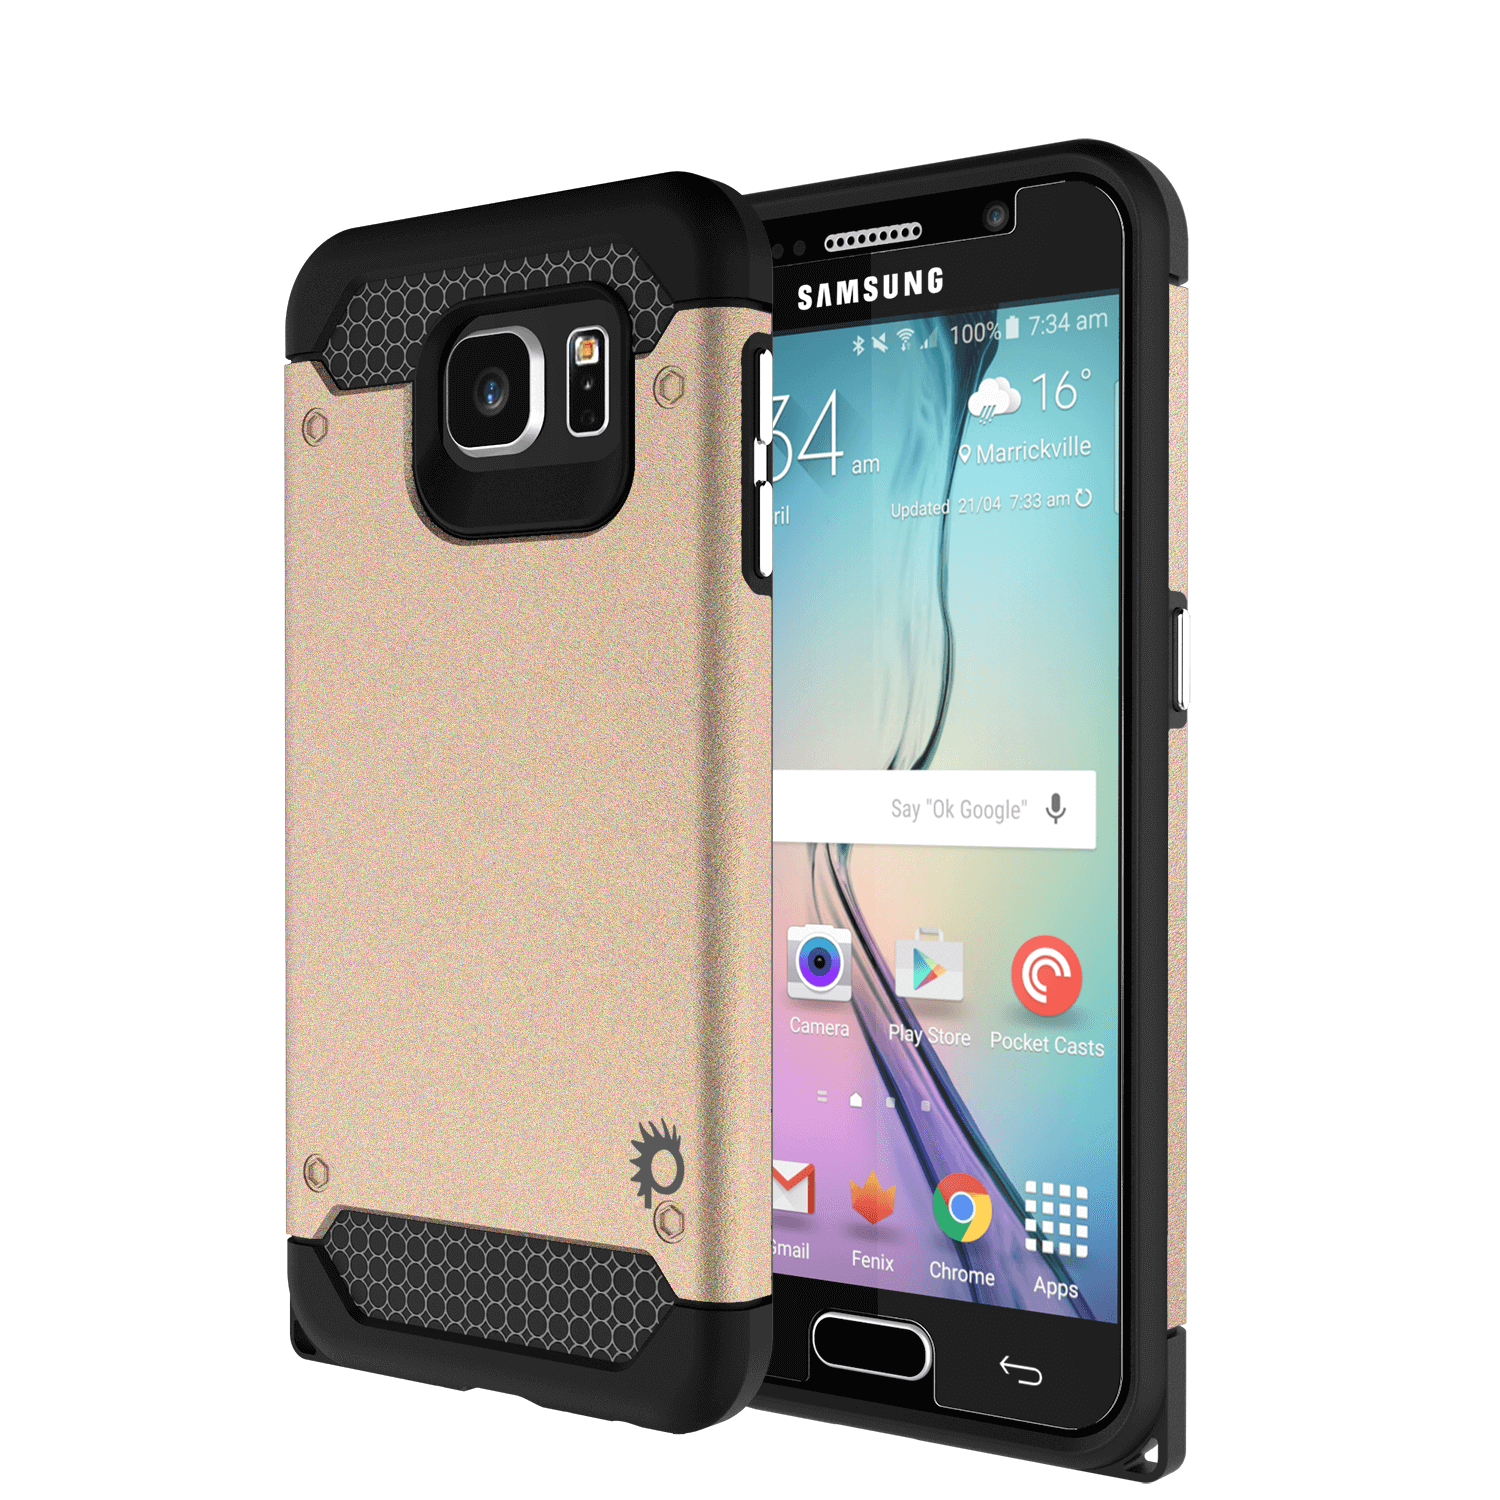 Galaxy s6Case PunkCase Galactic Gold Series Slim Protective Armor Soft Cover Case w/ Tempered Glass Protector Lifetime Warranty